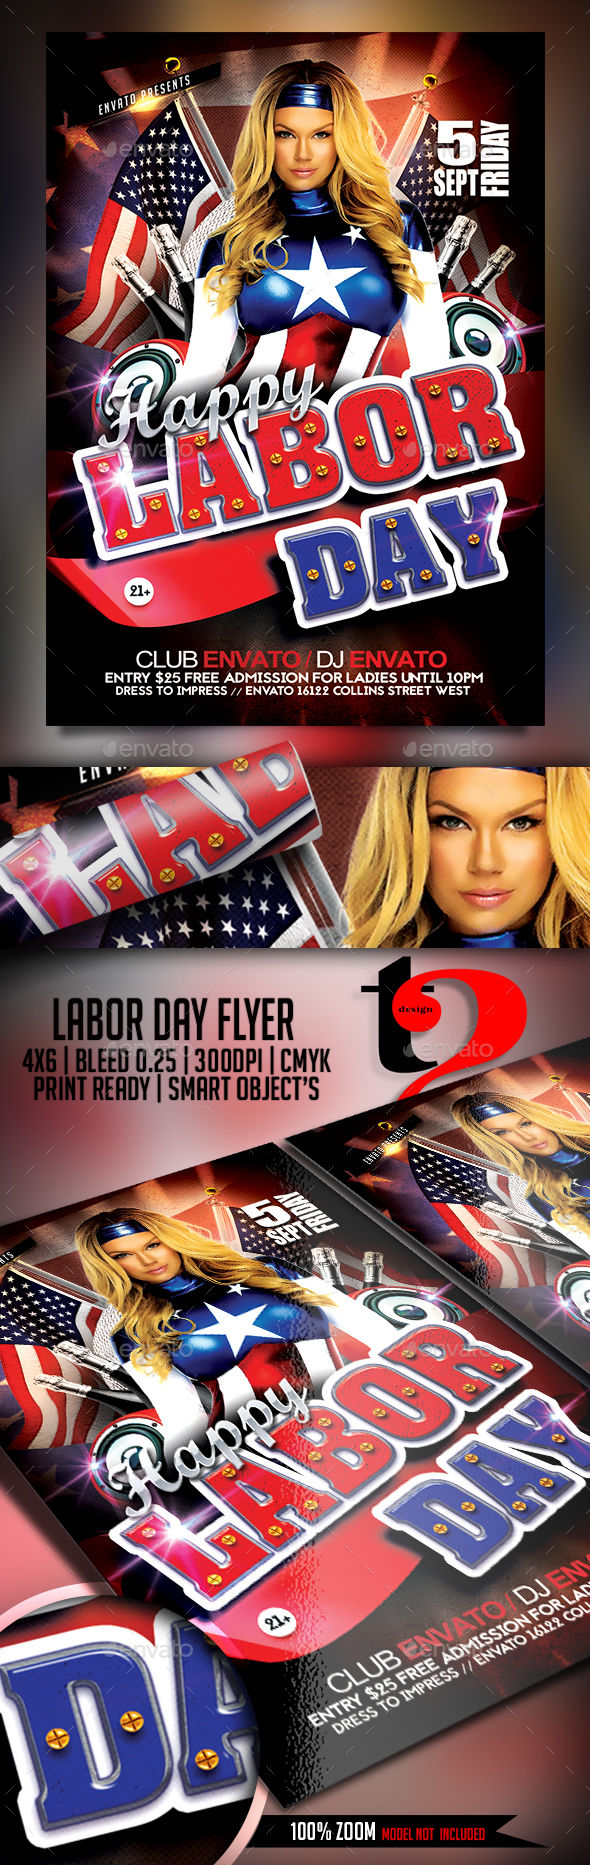 Labor Day Flyer by Take2Design (Labor Day party flyer)